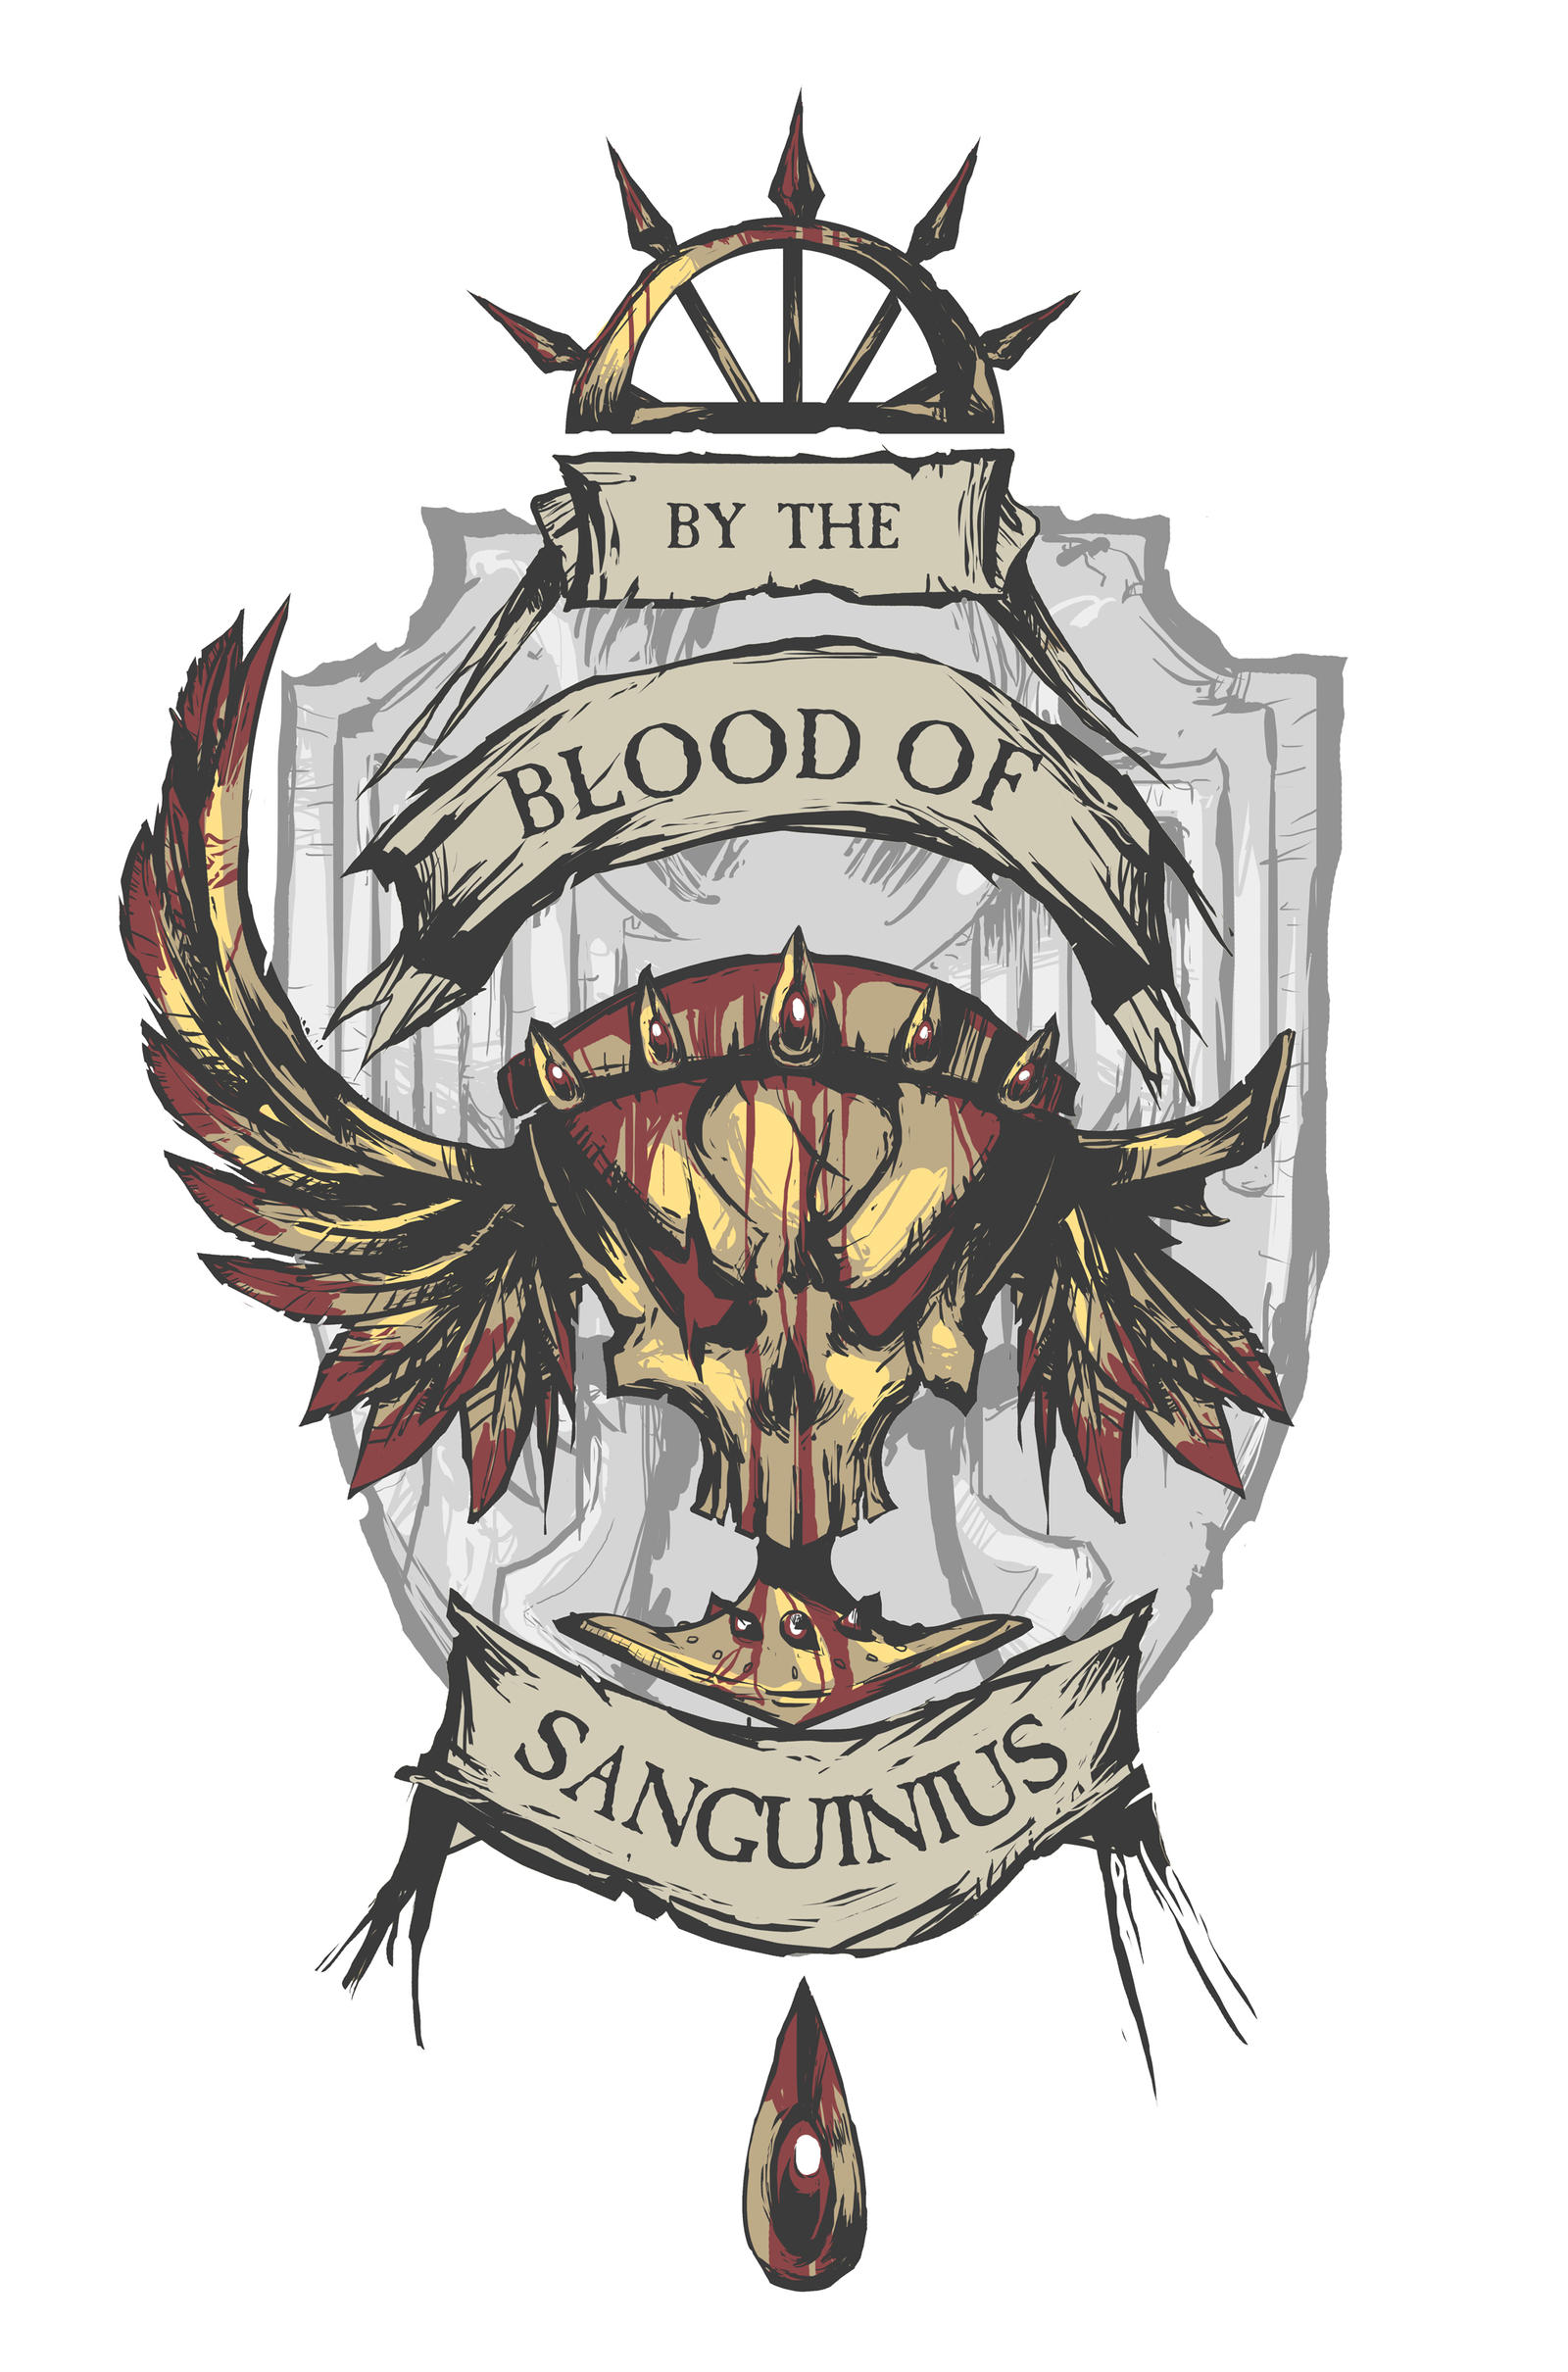 By the blood of Sanguinius! by t-cezar